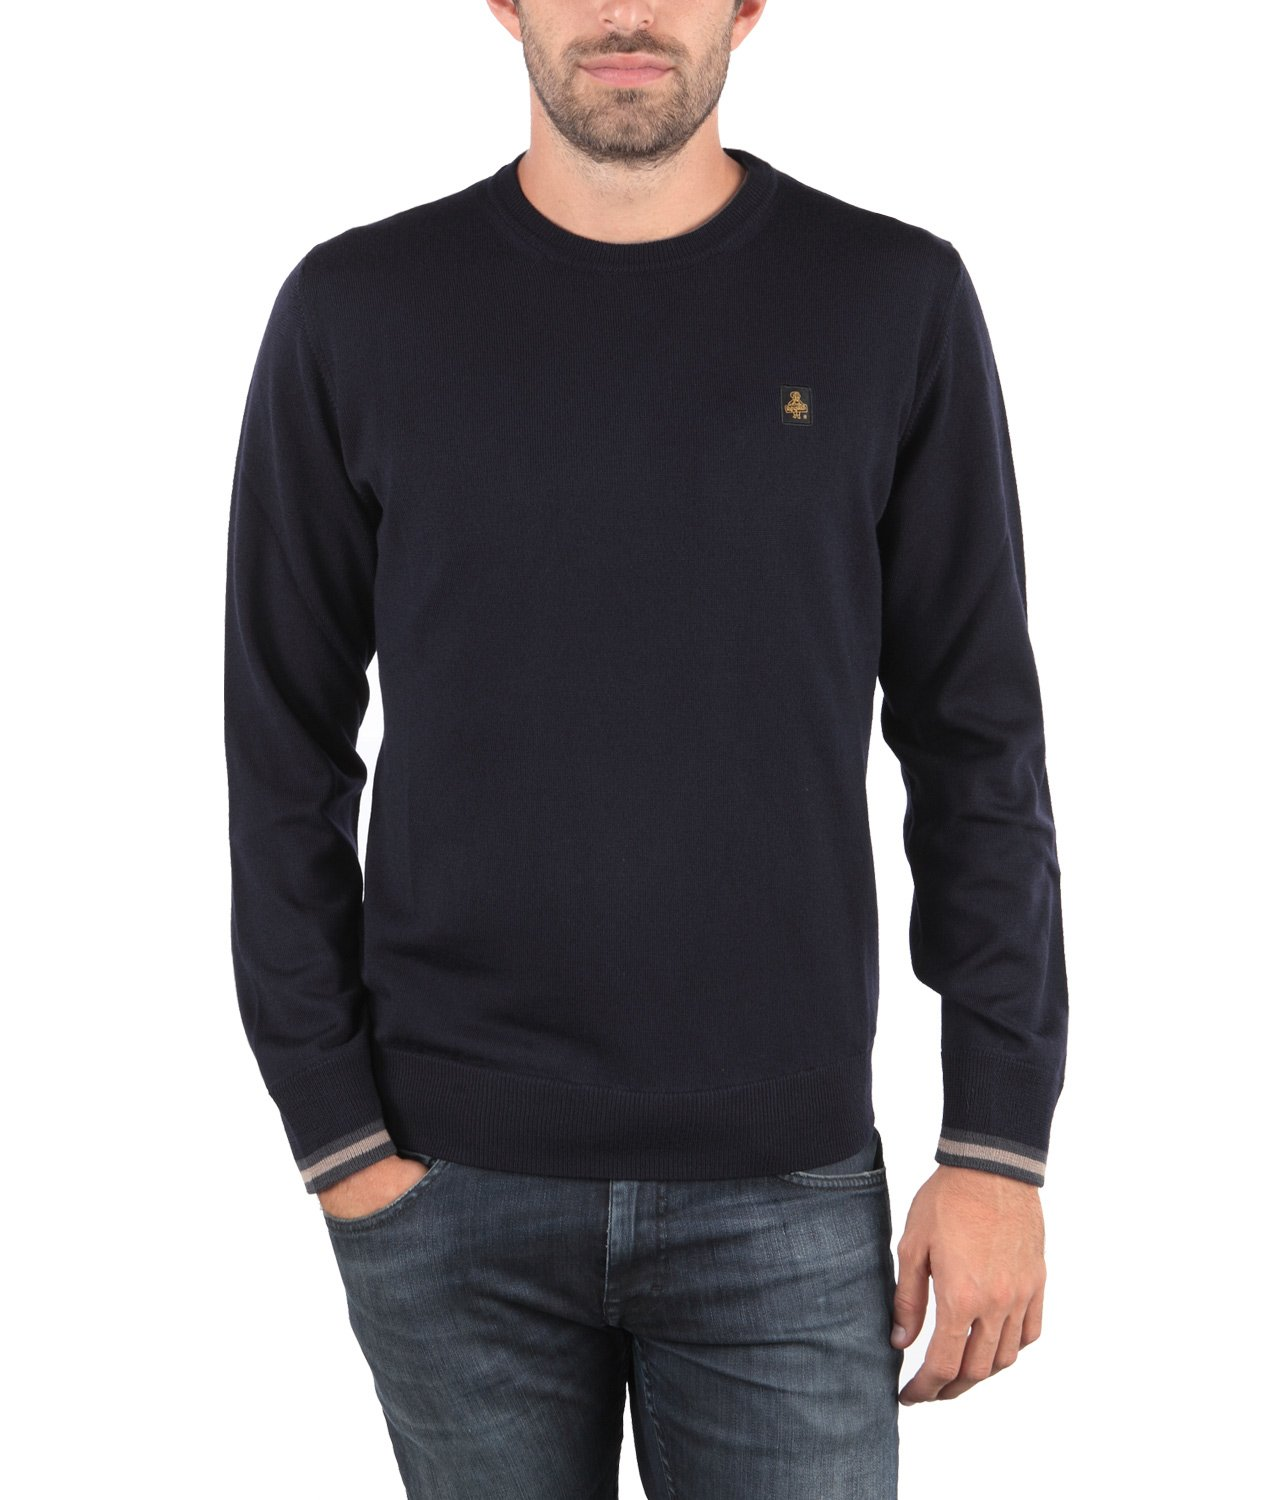 DONAL PULLOVER